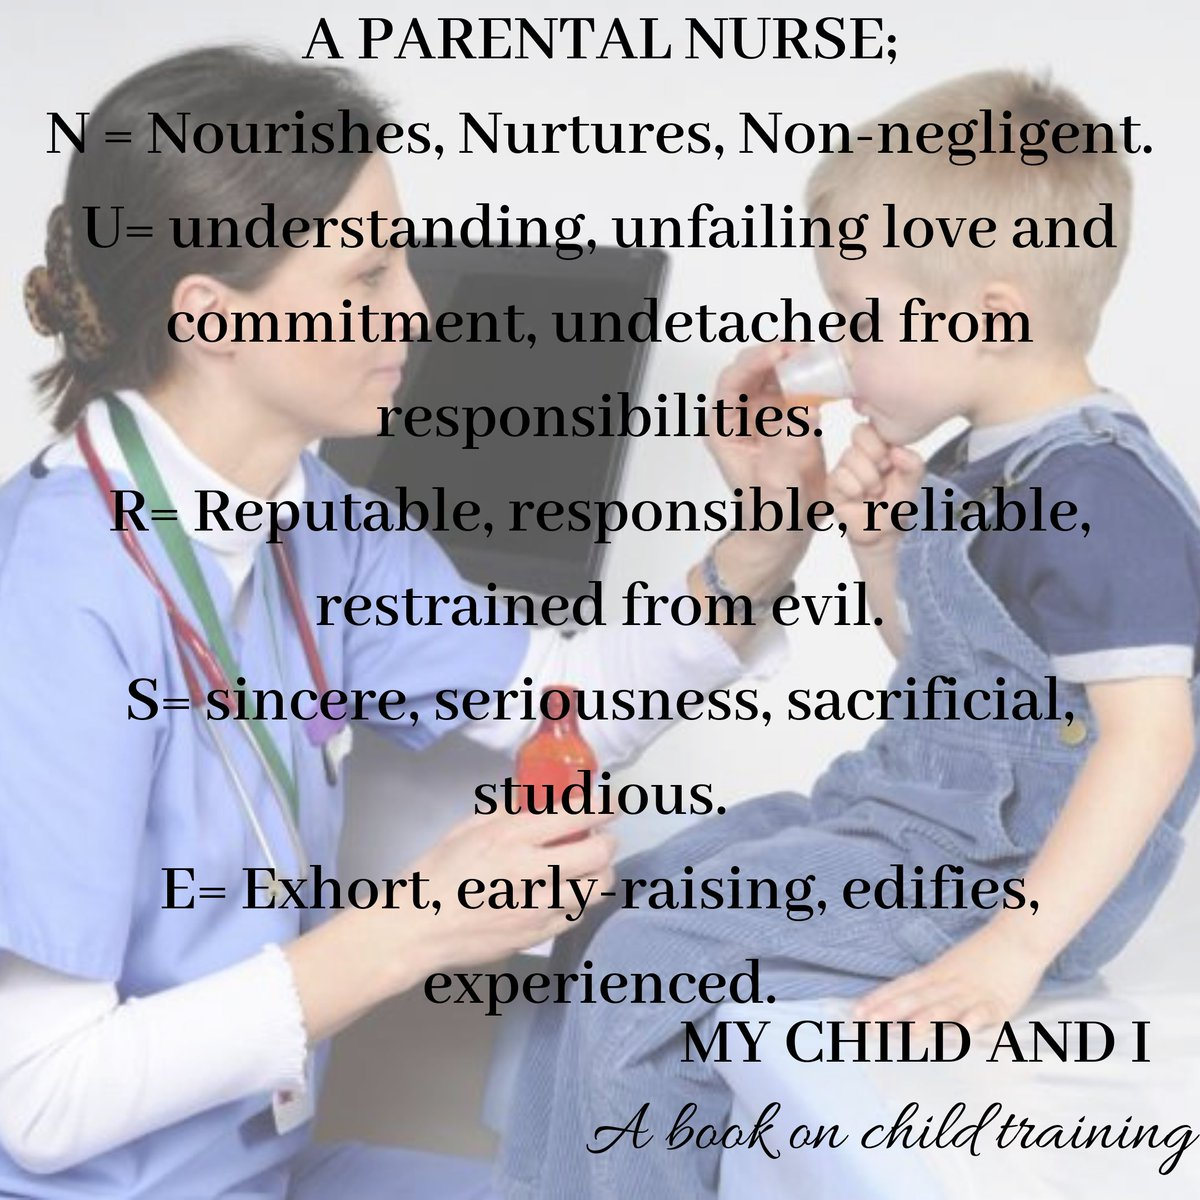 Greetings to all #Parents don't forget you must never forget your #parentingtips in this your present#parenhood We are all #nurses #Nursing the future of our #Children   #childrensbook: My child and I https://t.co/eqypBkTNXr